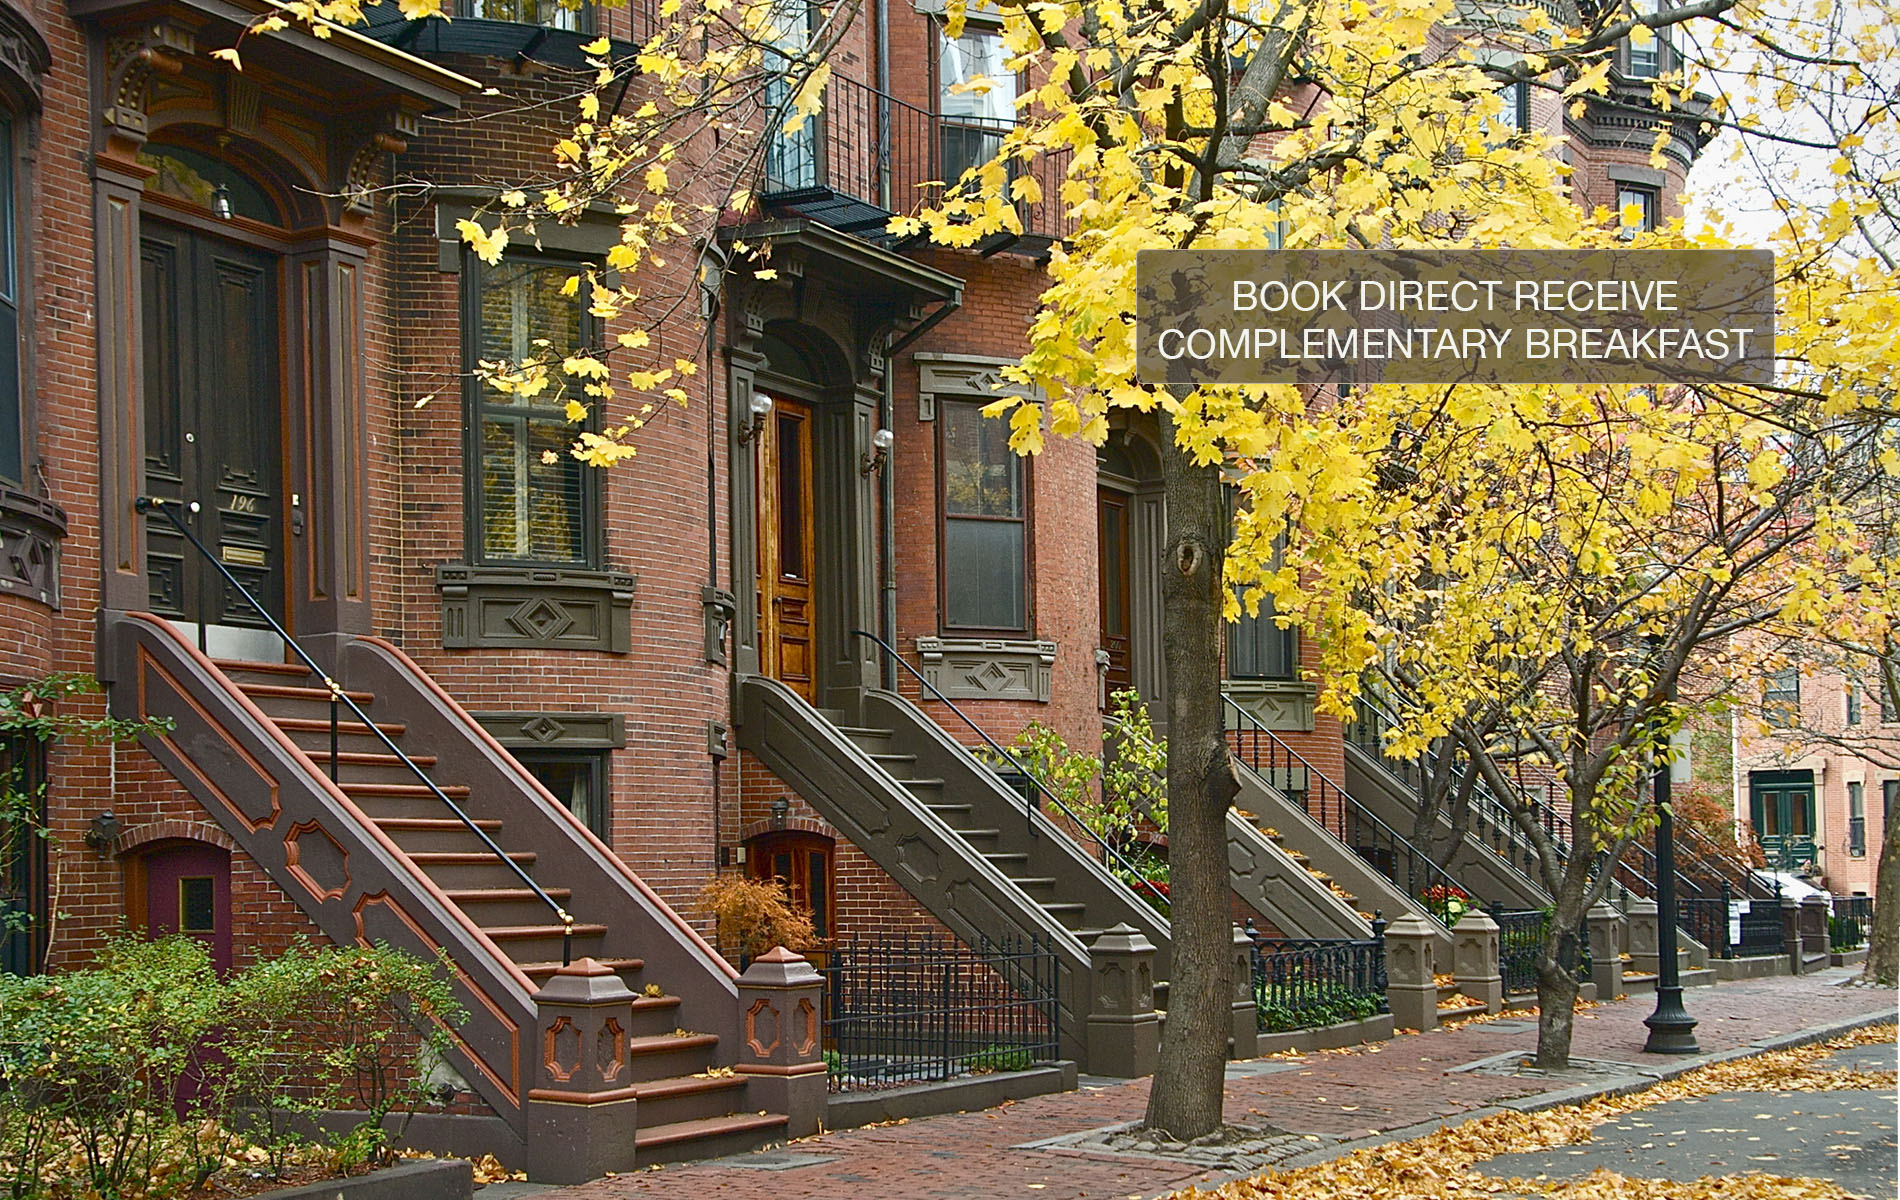 Red brick brownstone with stone staircase and large windows